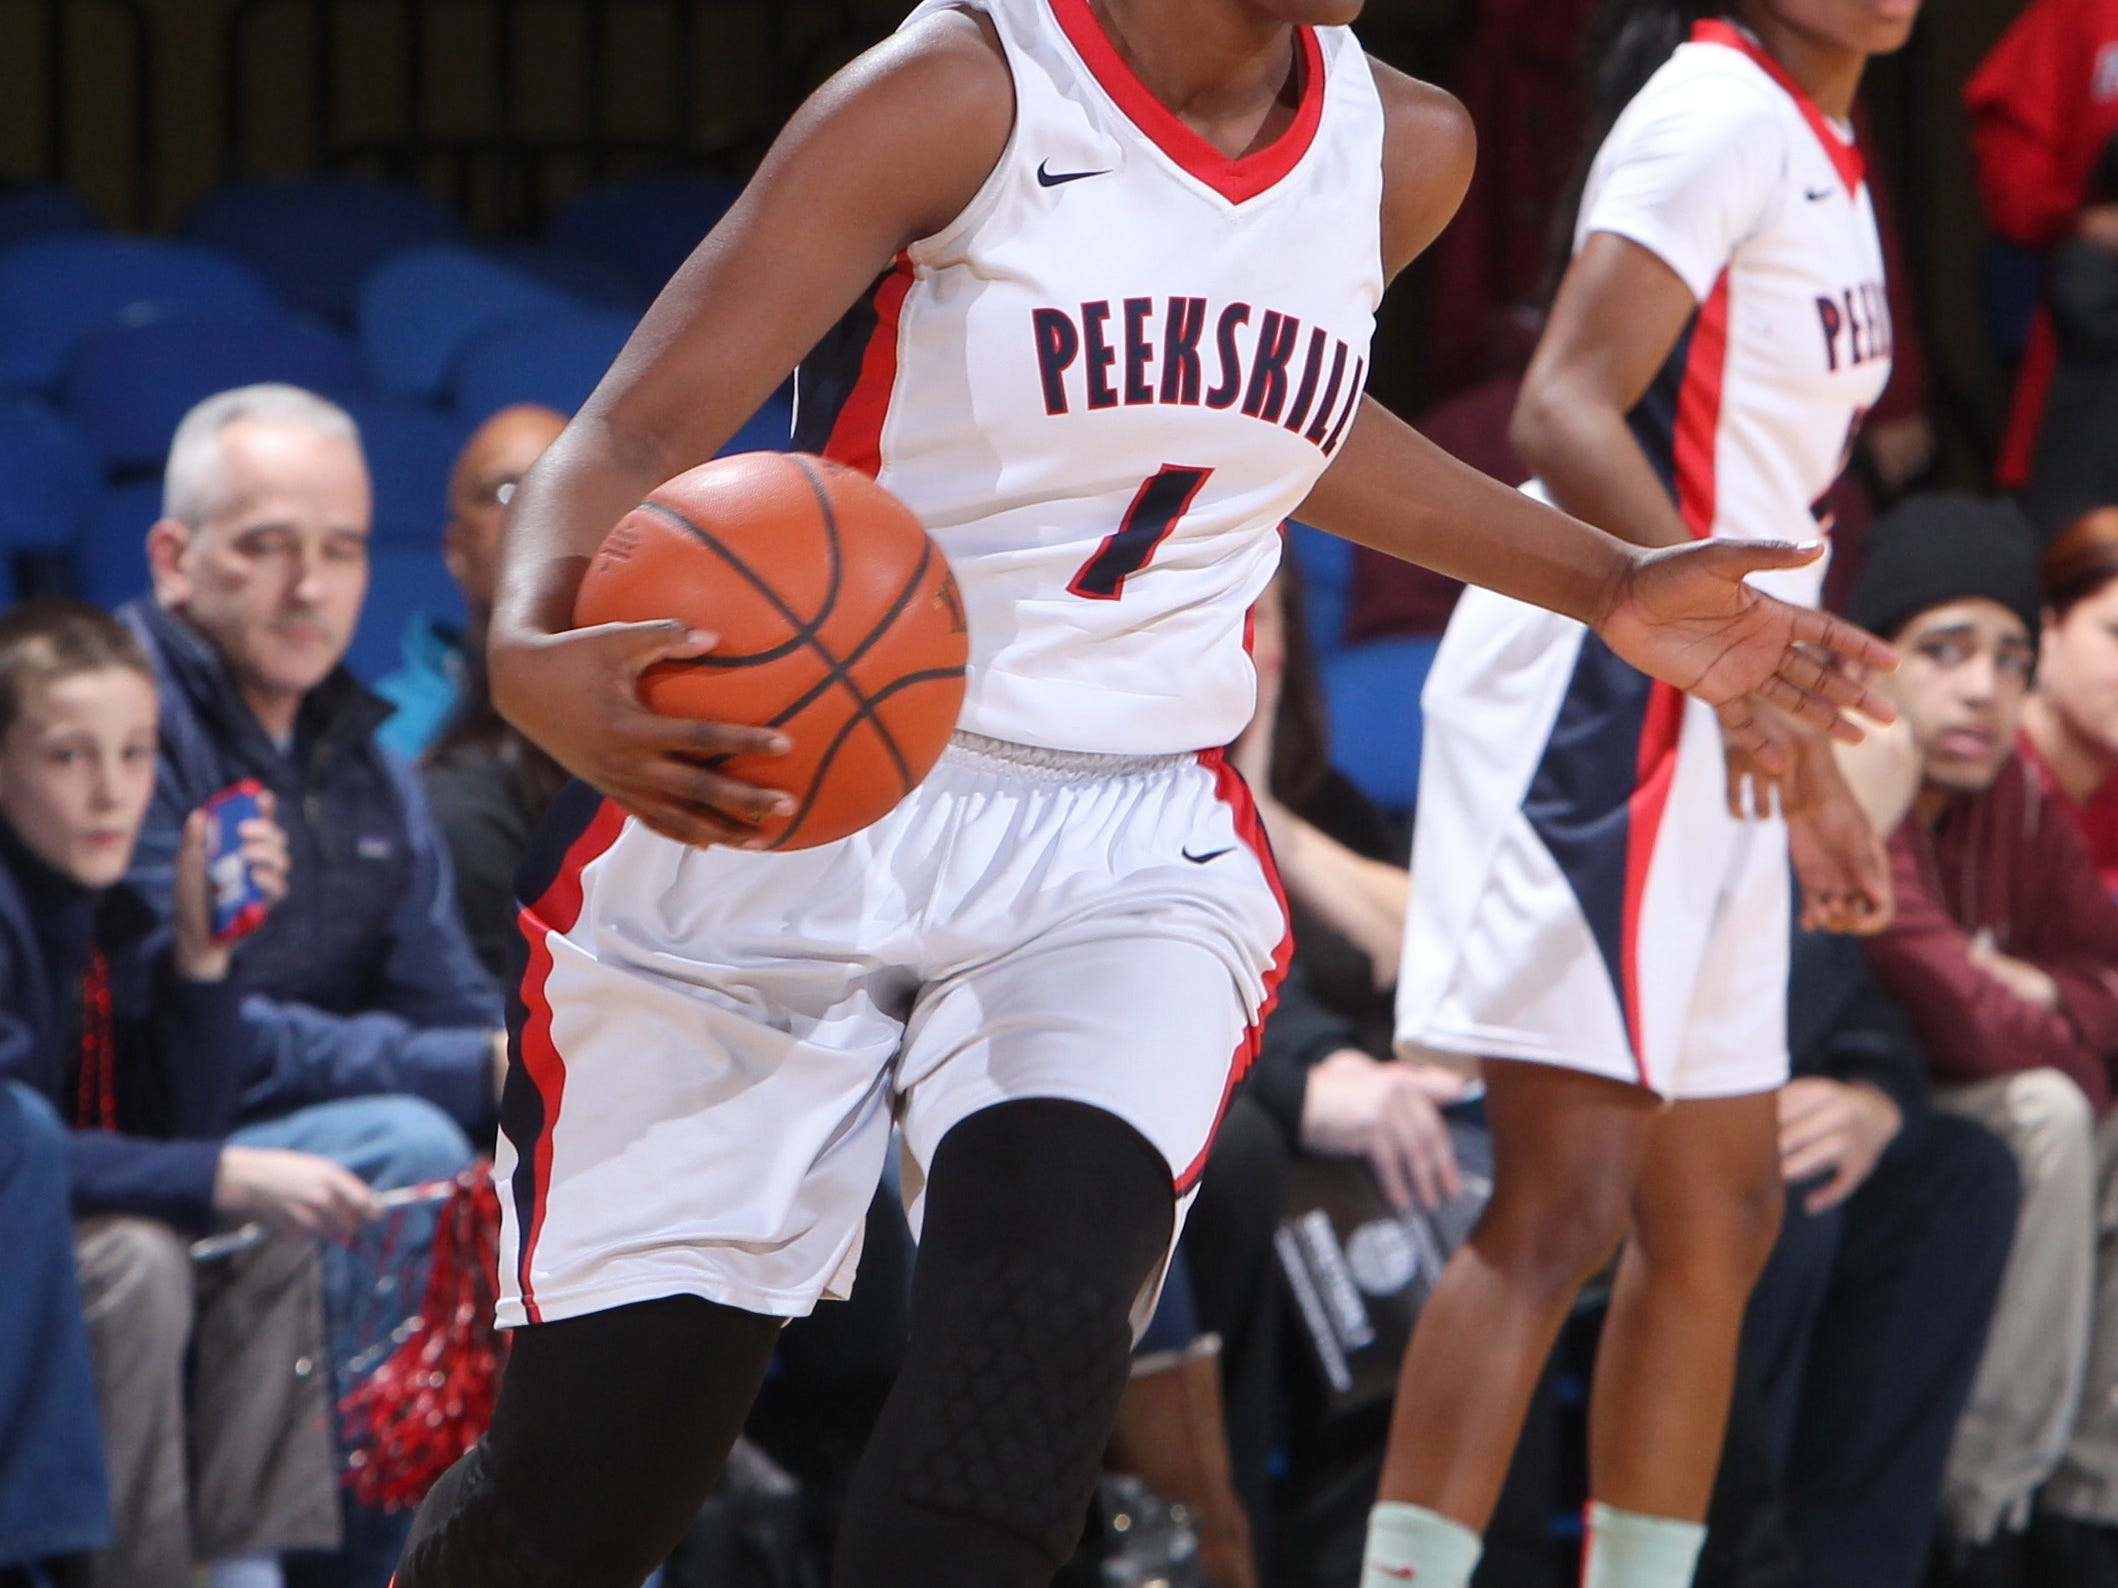 Peekskill's Lanay Rodney drives during a Section 1 Class A girls basketball semifinal with Rye at the Westchester County Center Feb. 26, 2015. Peekskill won 60-56.